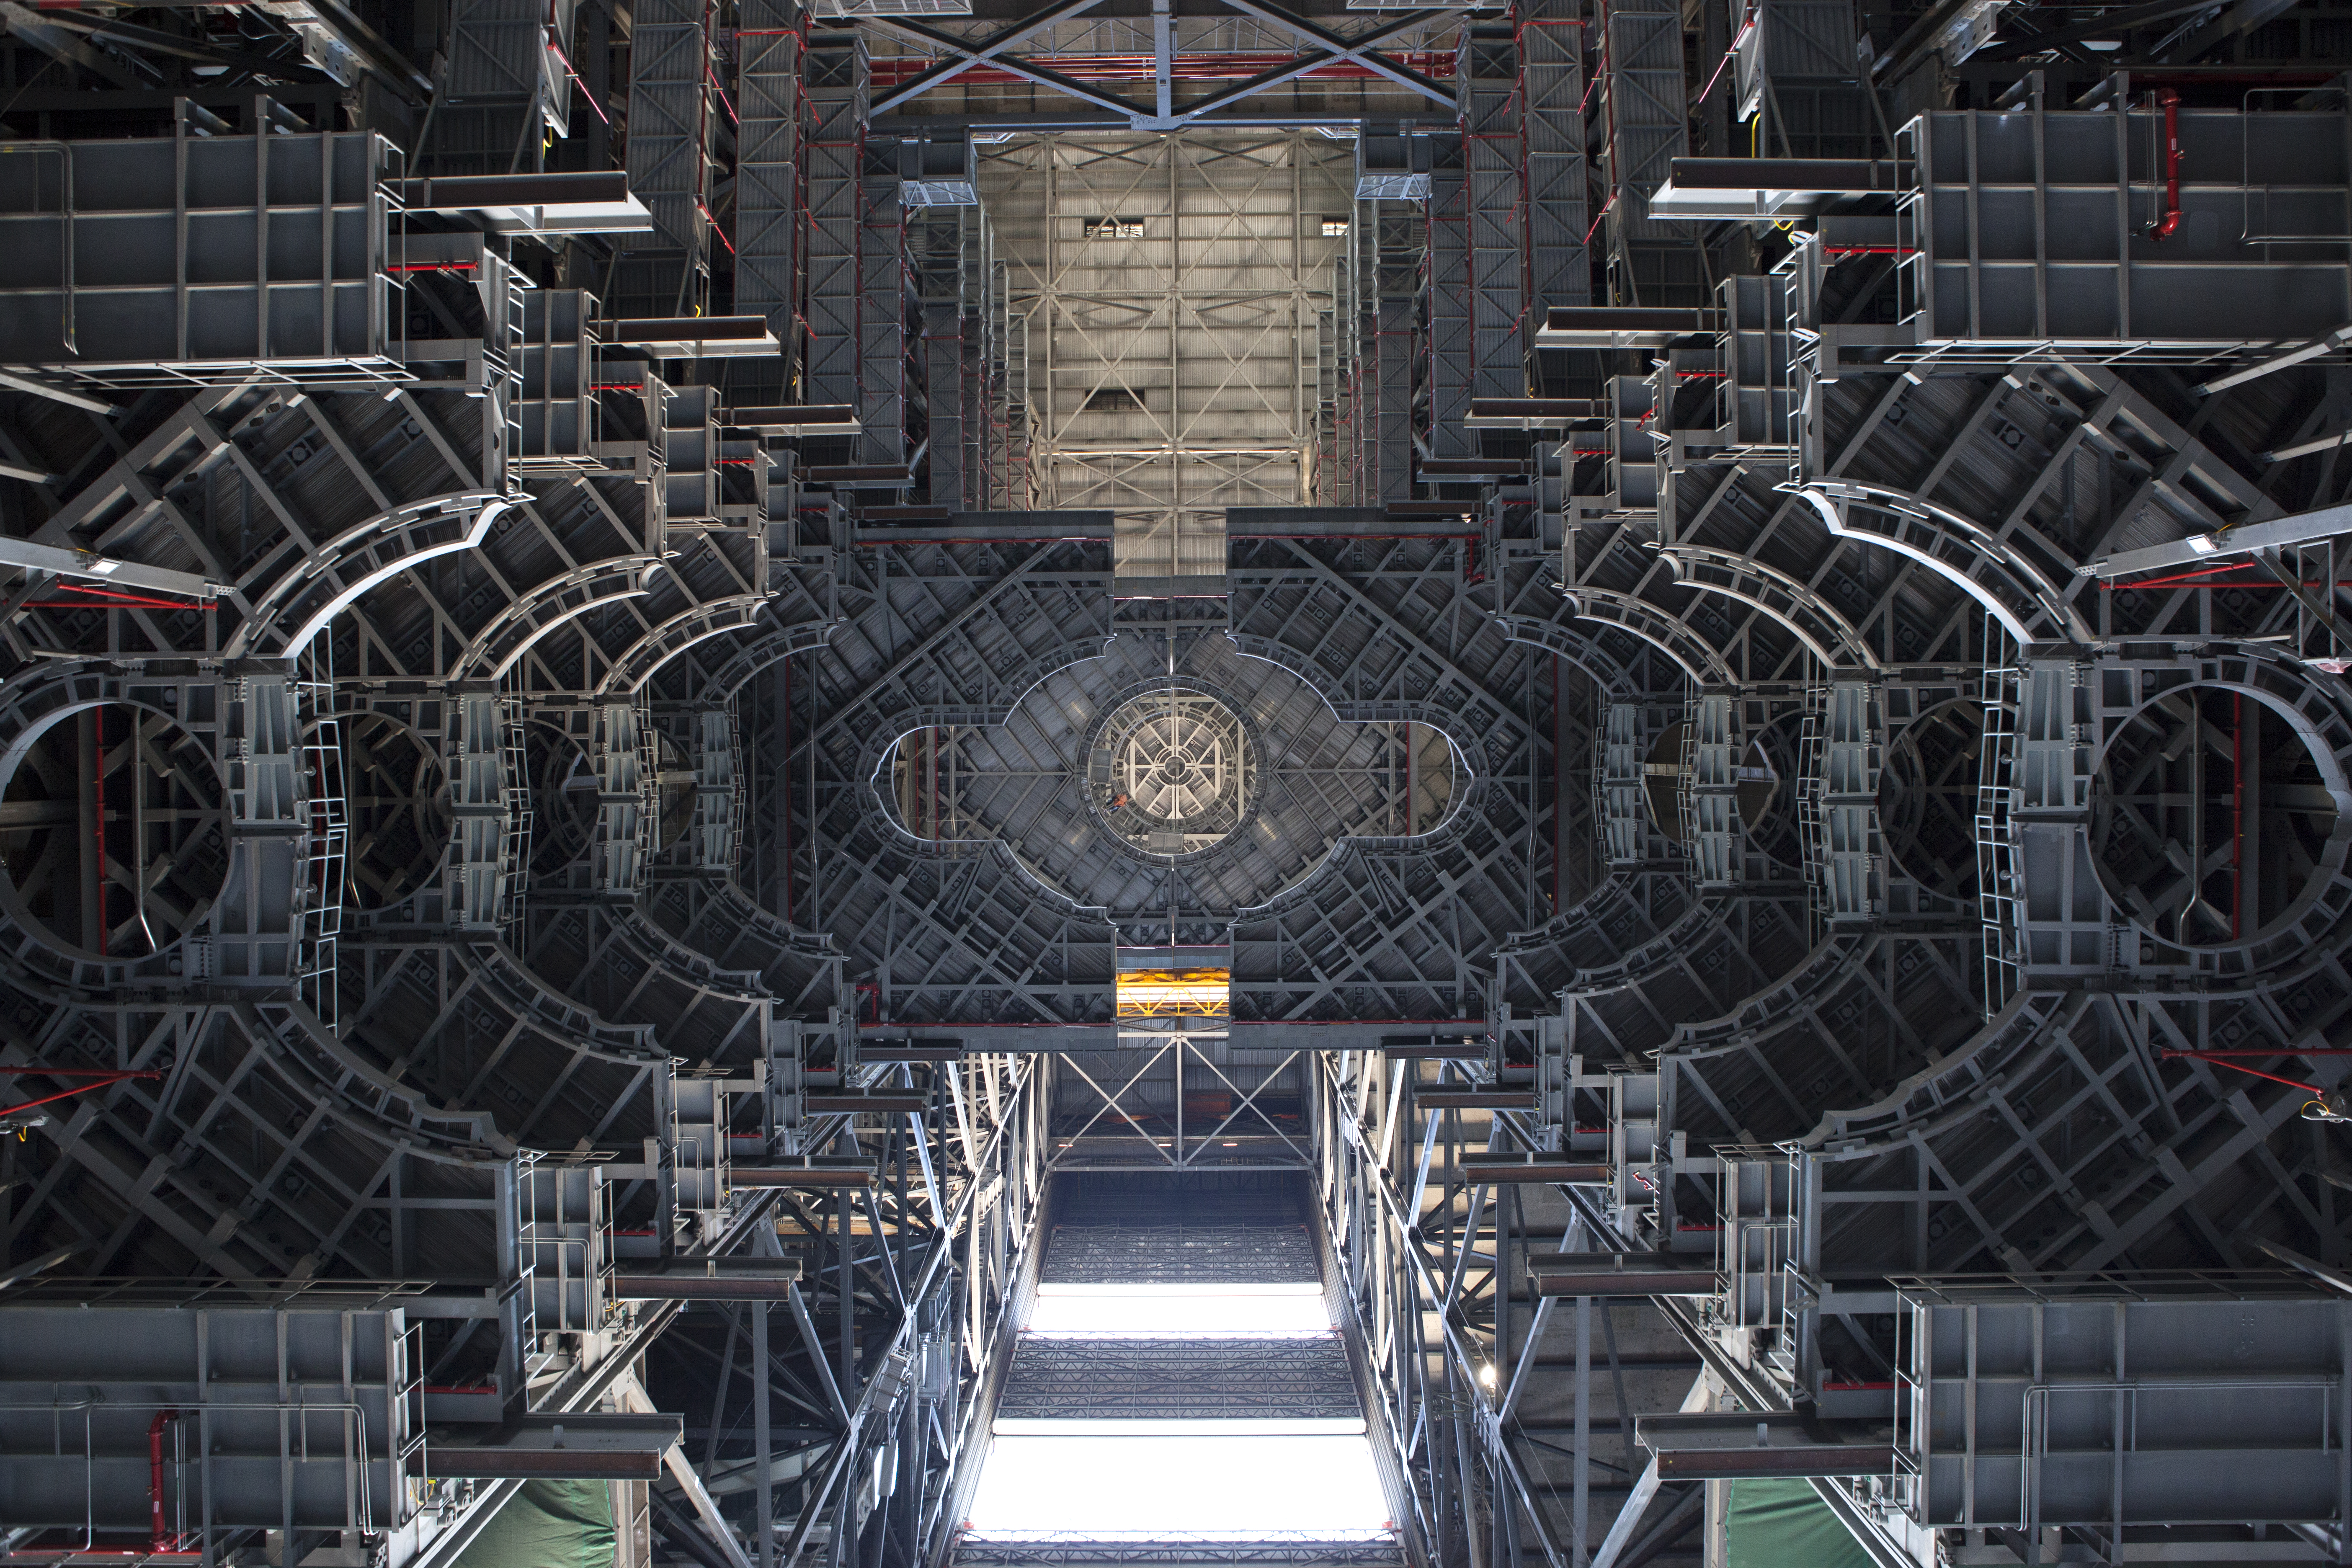 The view members of NASA's Engineering Management Board had in looking up the Vehicle Assembly Building's High Bay 3 at NASA John F. Kennedy Space Center in Florida, USA. Photographer: Bill White, National Aeronautics and Space Administration (NASA)